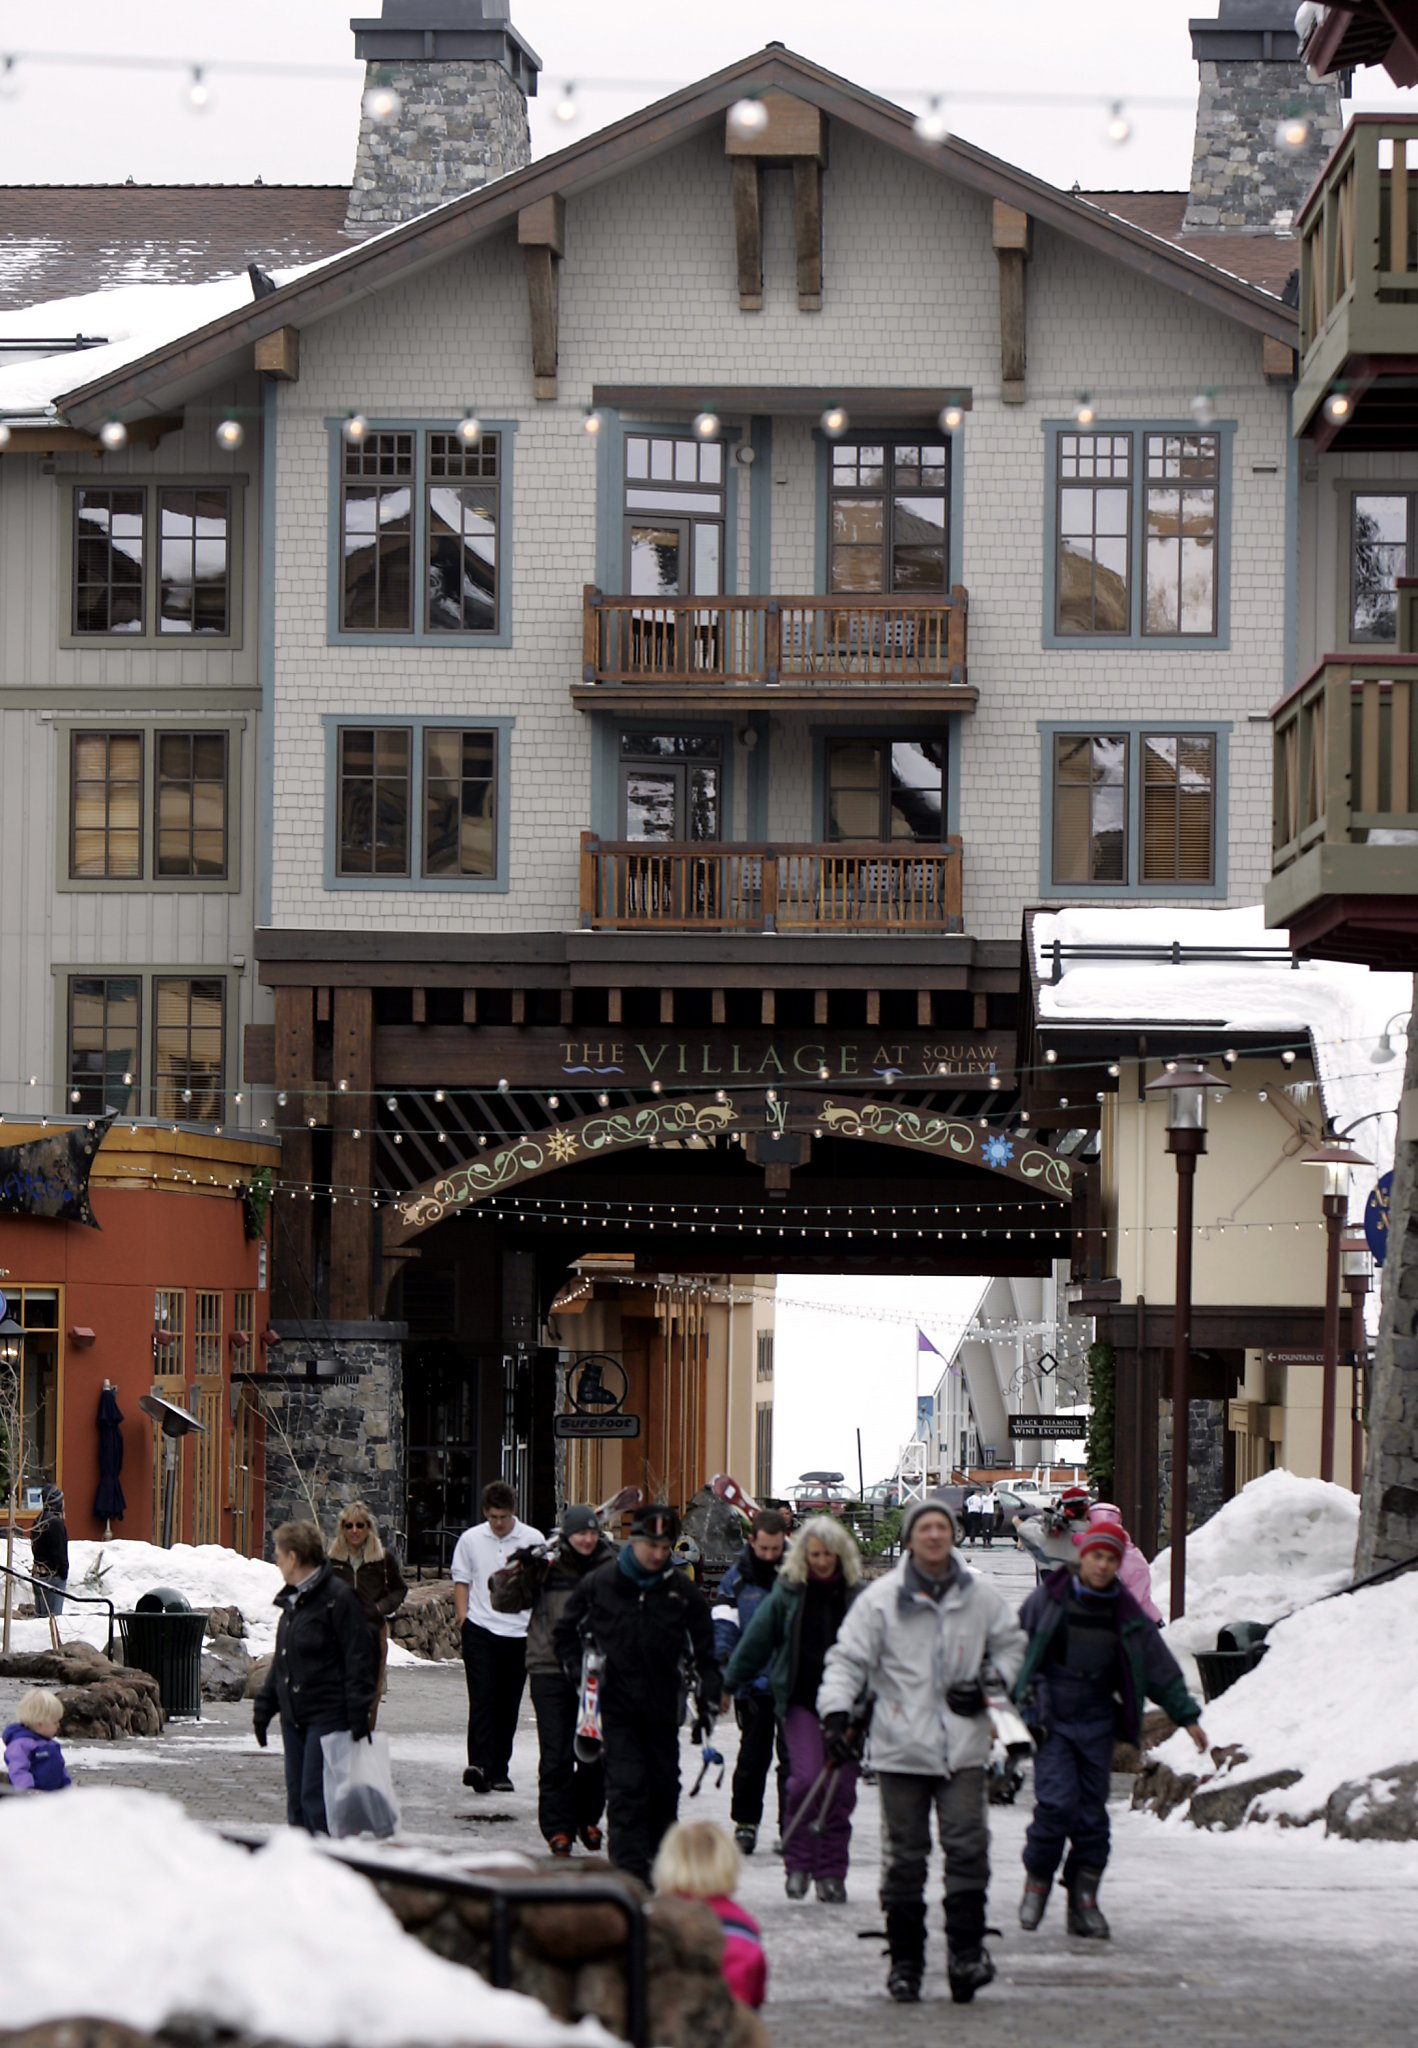 ed7184473d3 Big Squaw Valley resort expansion gets the green light - SFGate